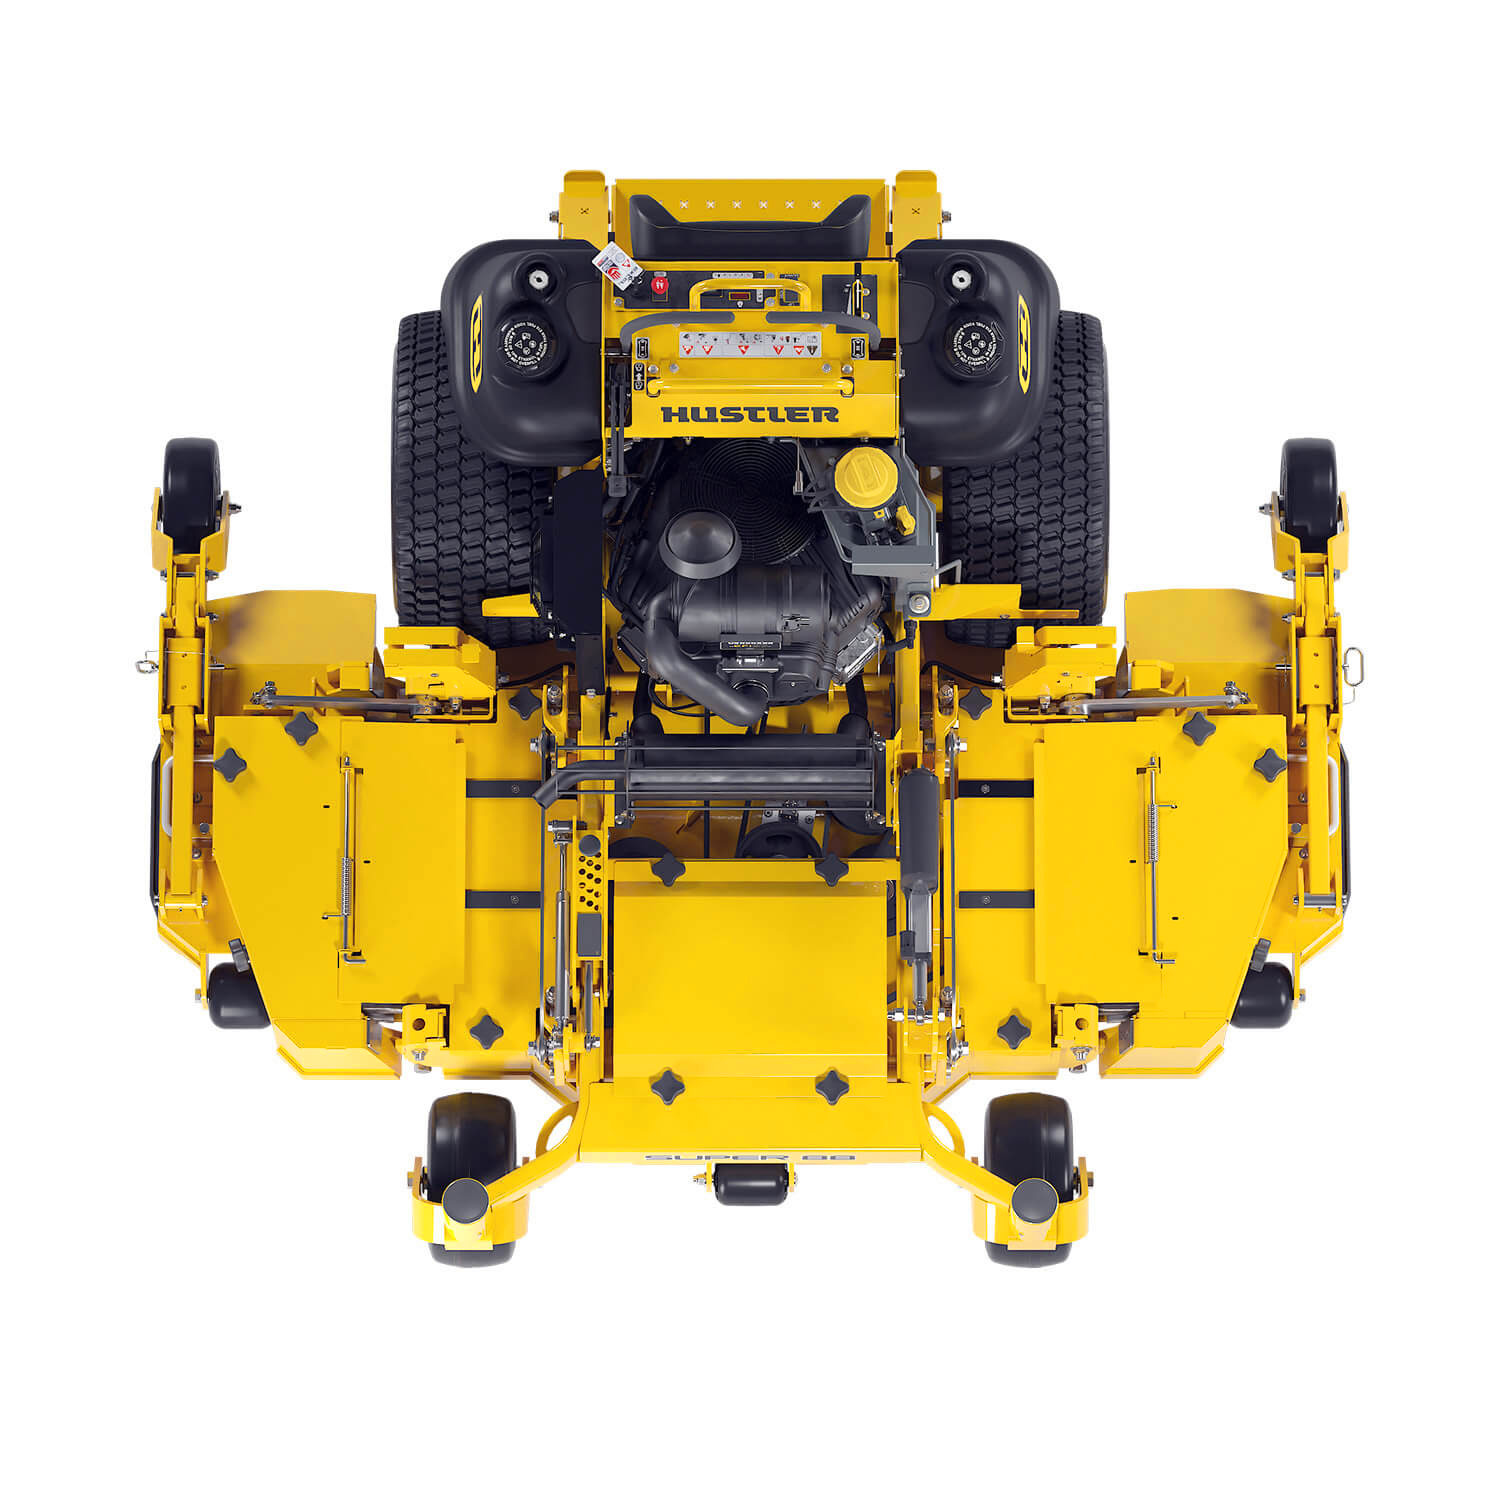 Image of a yellow stand-on mower seen from above